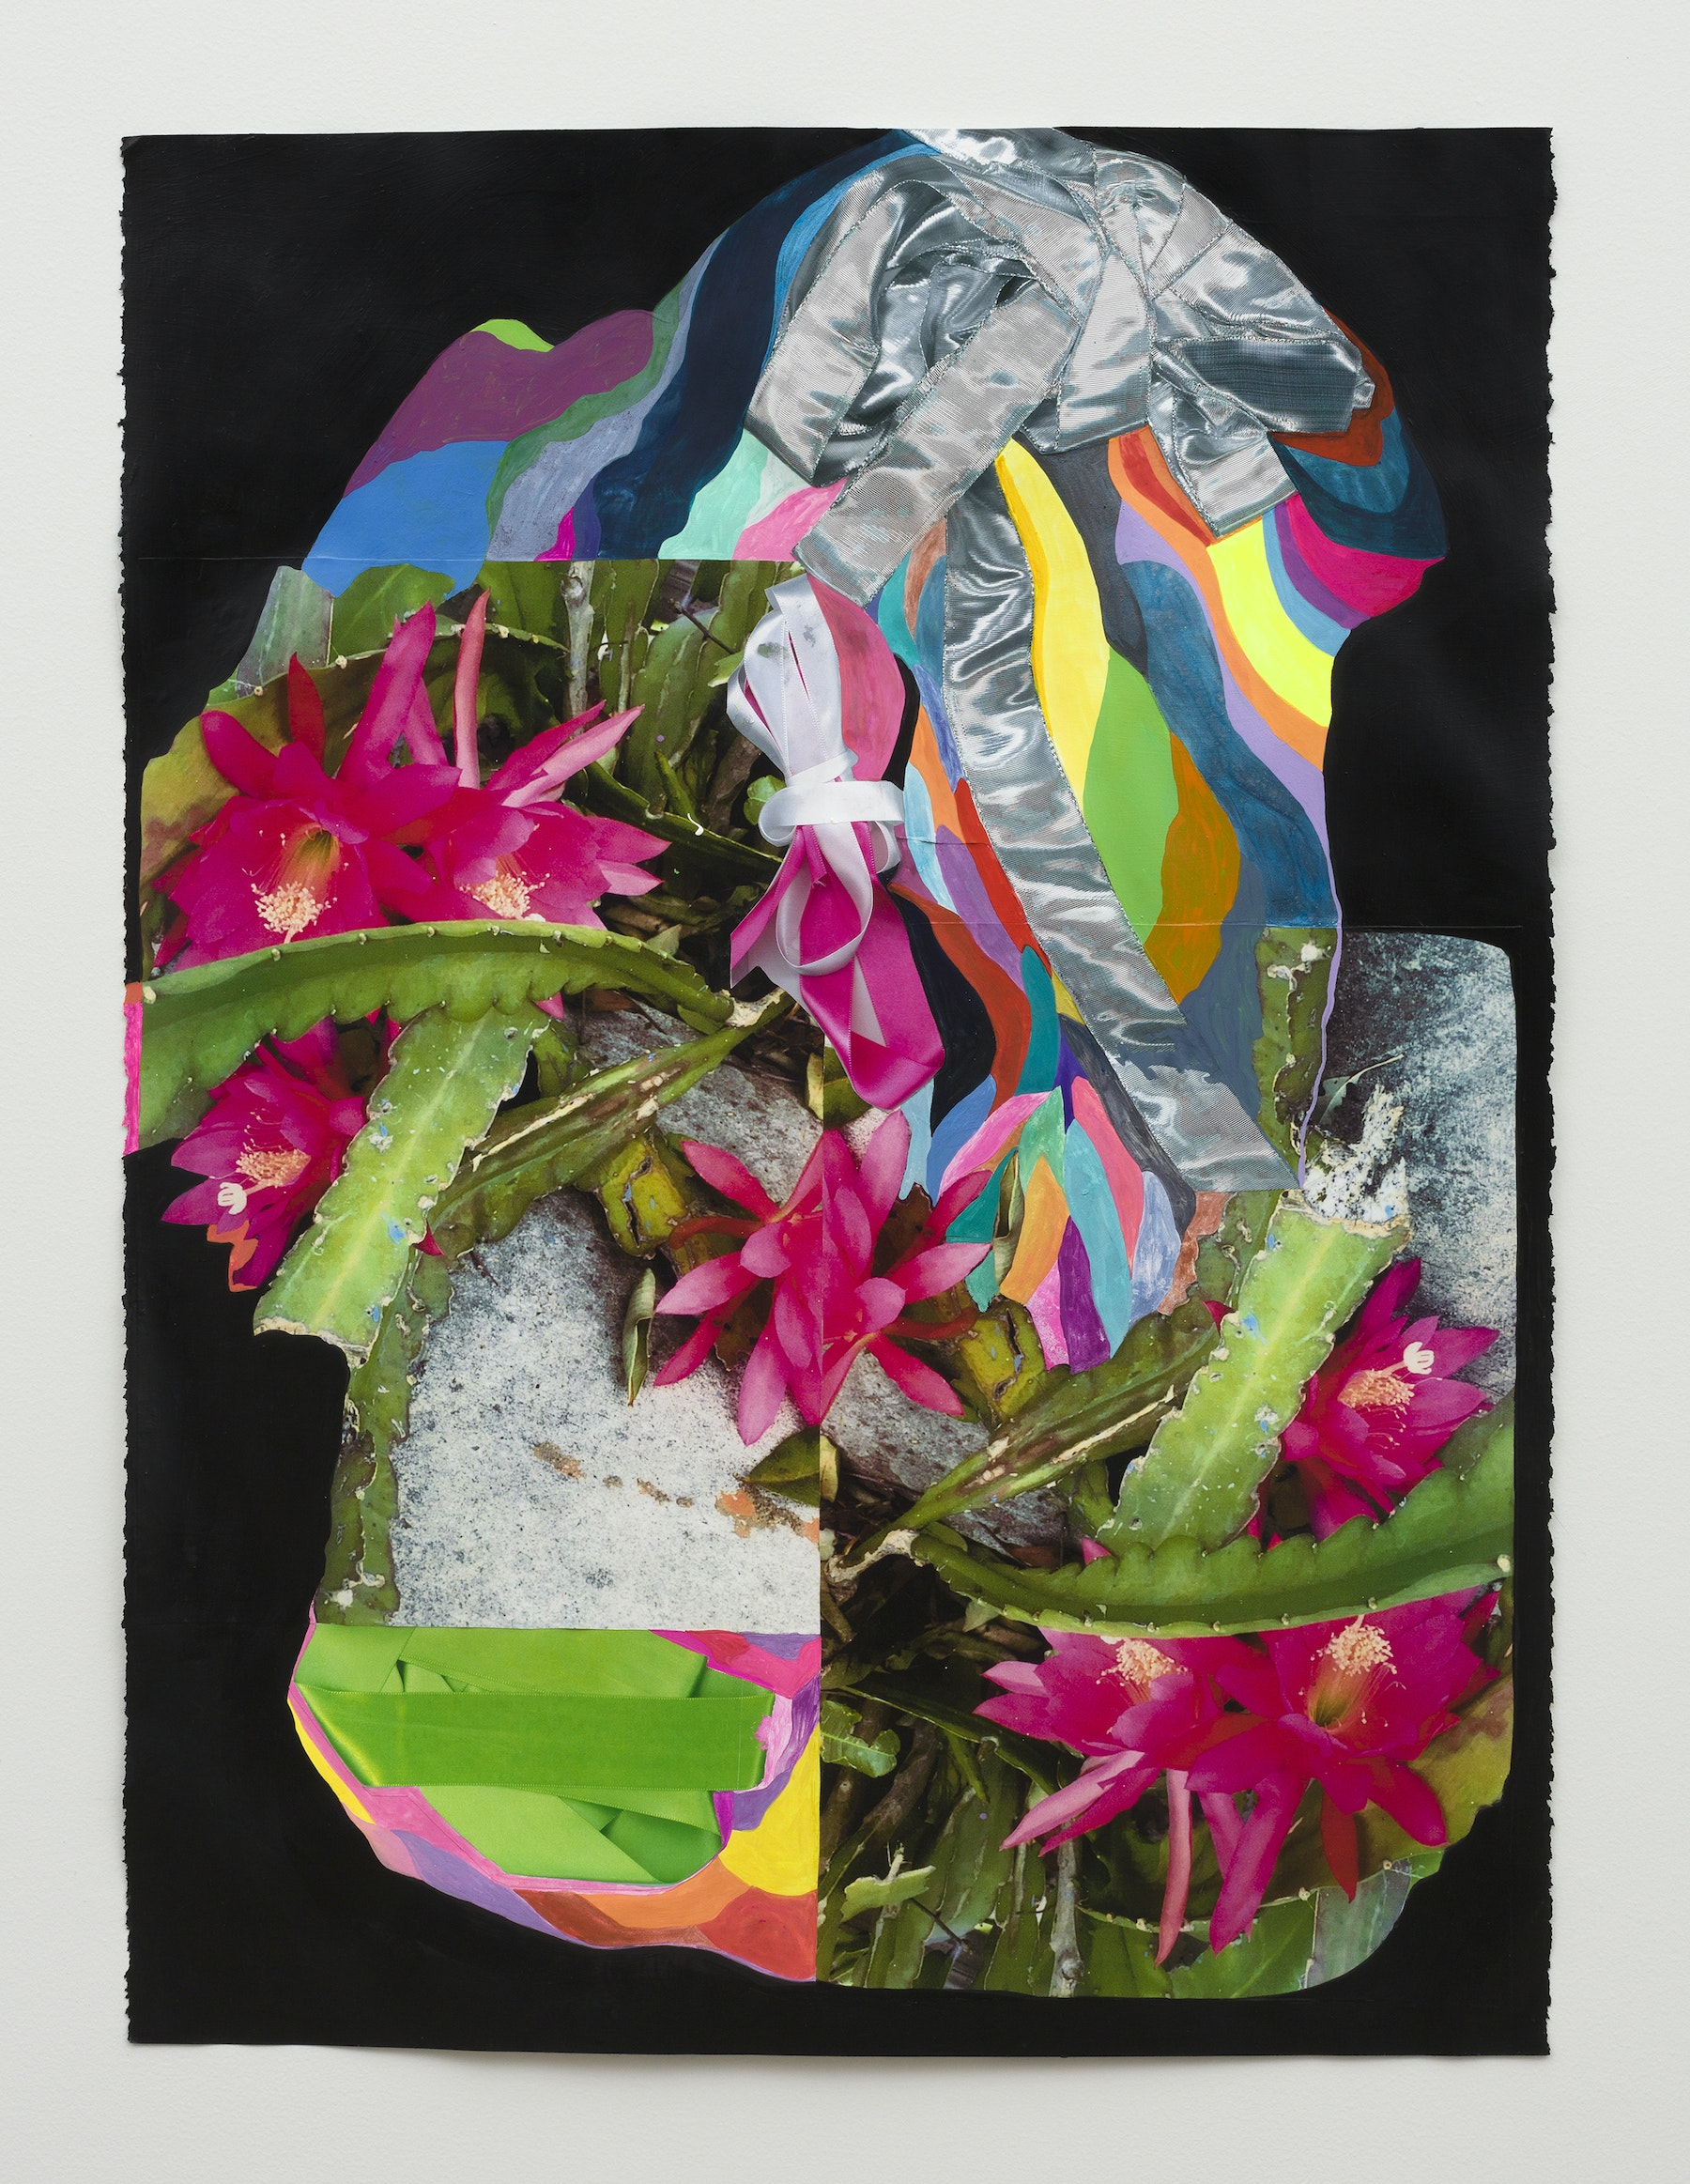 "Sarah Cain ""ribbons & plants,"" 2020 Gouache, latex, acrylic and color copies on paper 30 x 22"" [HxW] (76.2 x 55.88 cm) Inventory #CAS131 Courtesy of the artist and Vielmetter Los Angeles Photo credit: Jeff McLane"